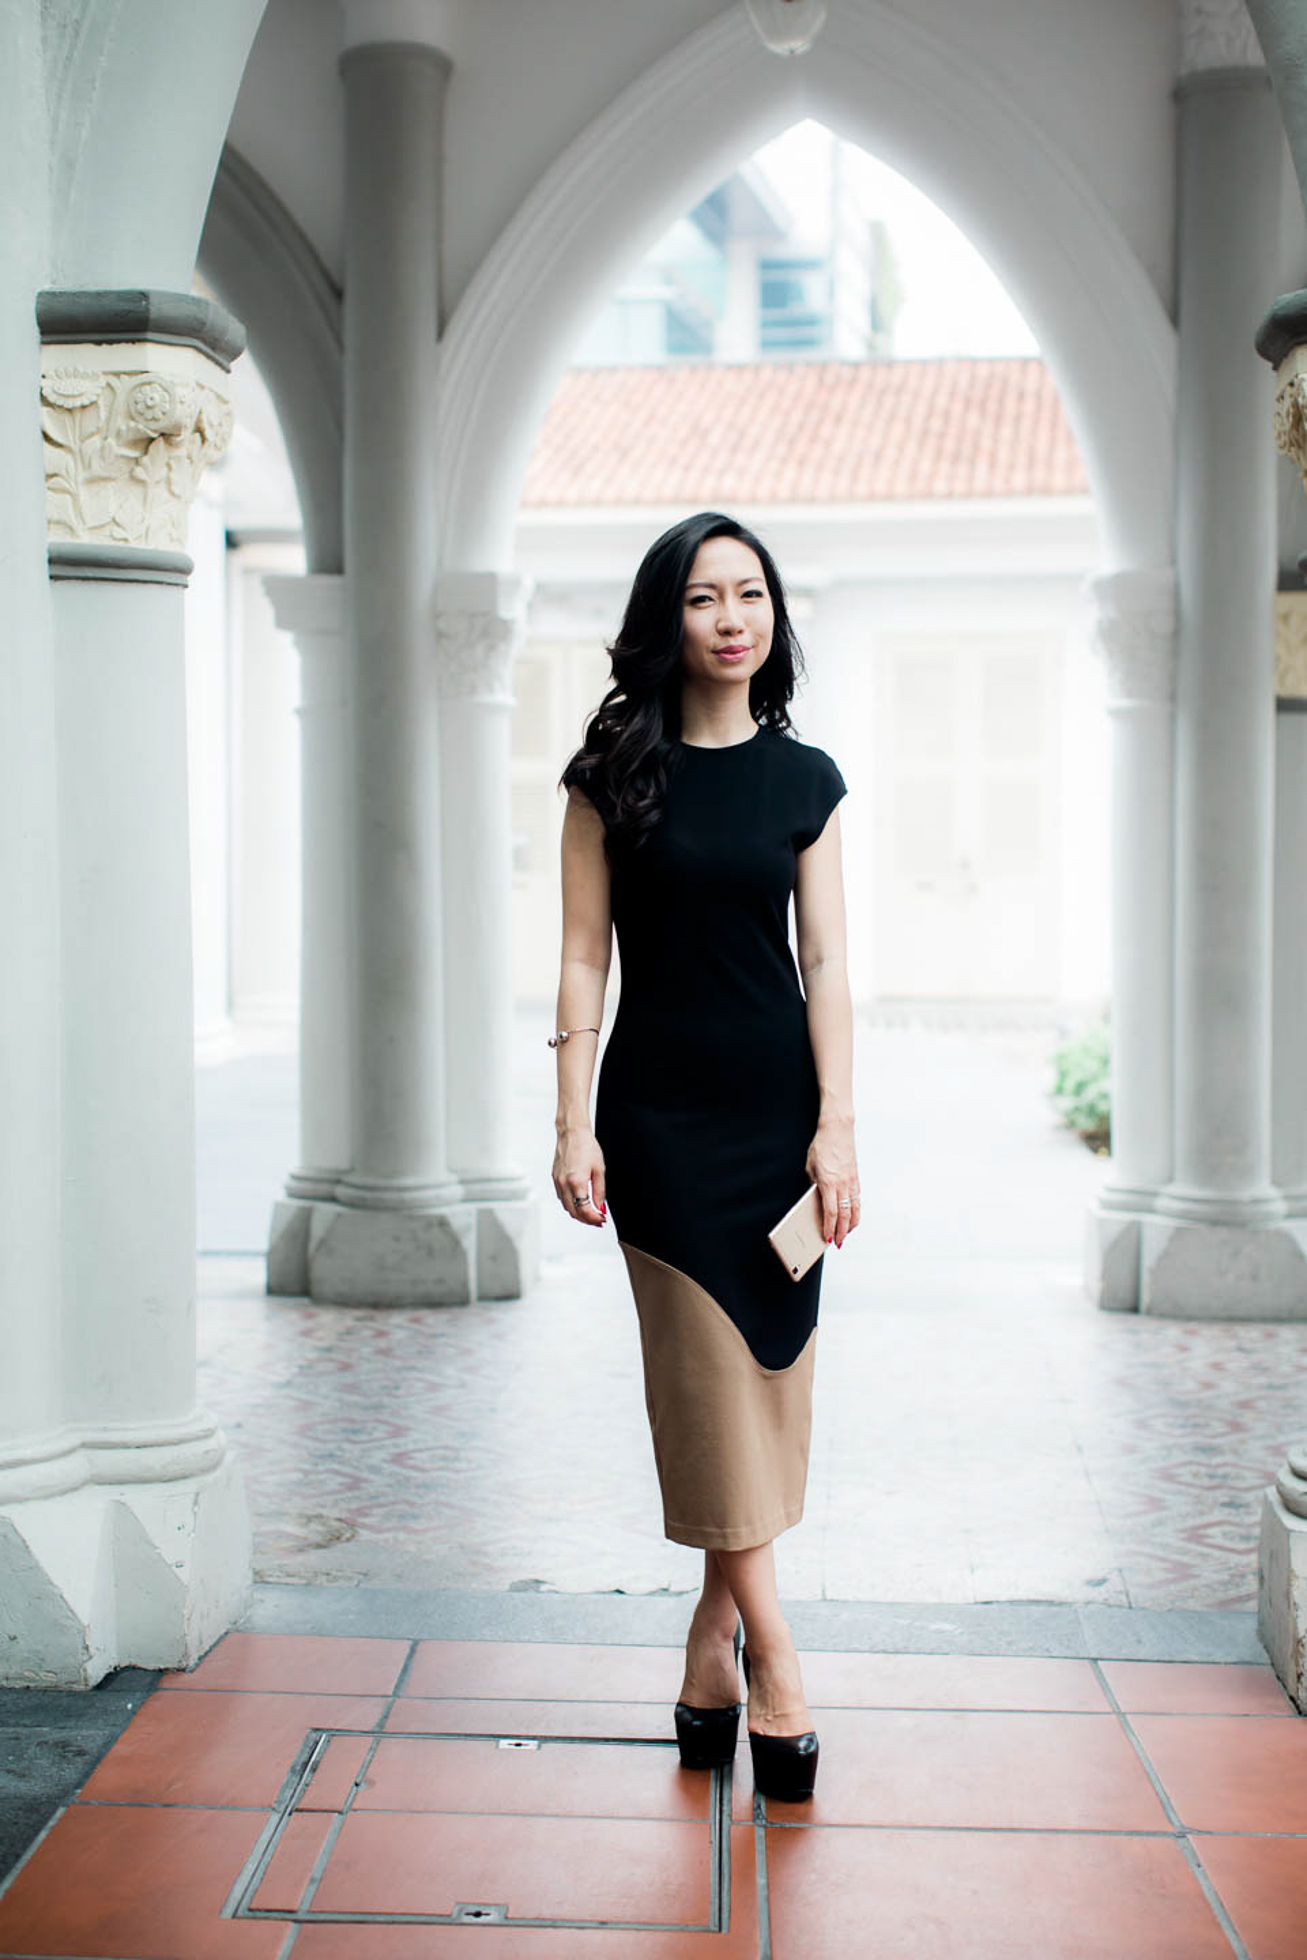 Jaime Lee, Founder, The Paper Bunny